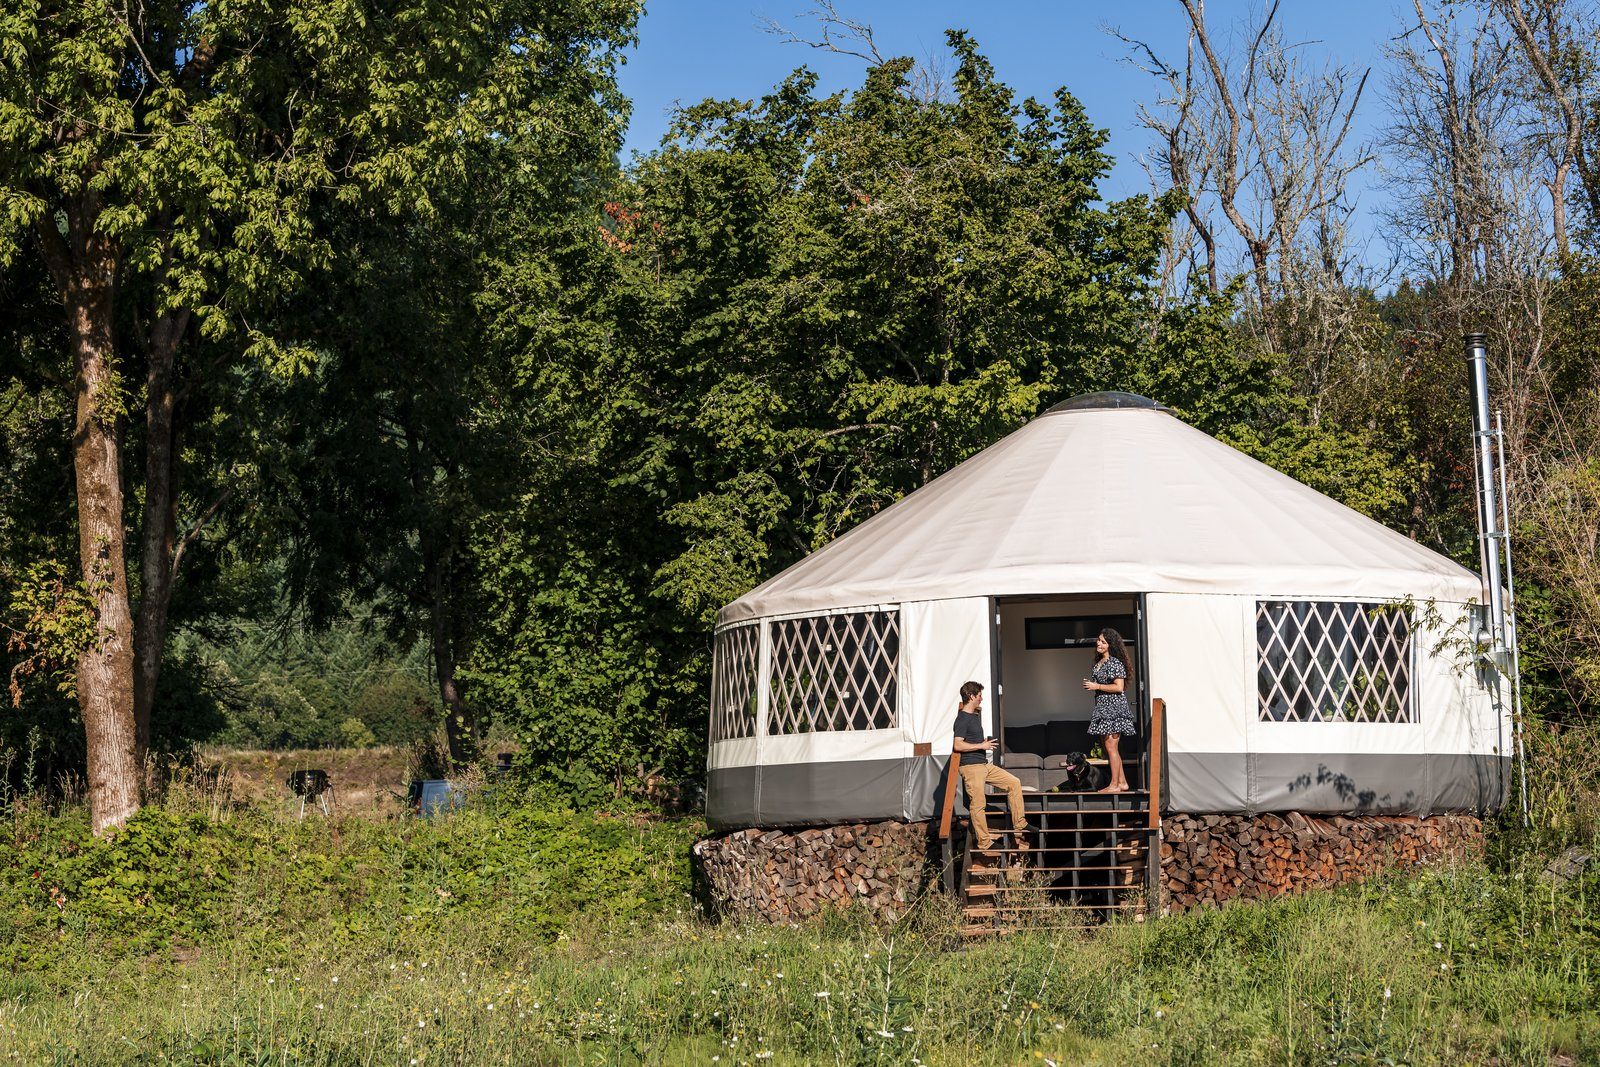 Construction Diary Modern Yurt By Zach Both Dwell And if you opt for a container home or yurt, you'll need to buy a piece of land to put it on unless you have a really good friend with a. construction diary modern yurt by zach